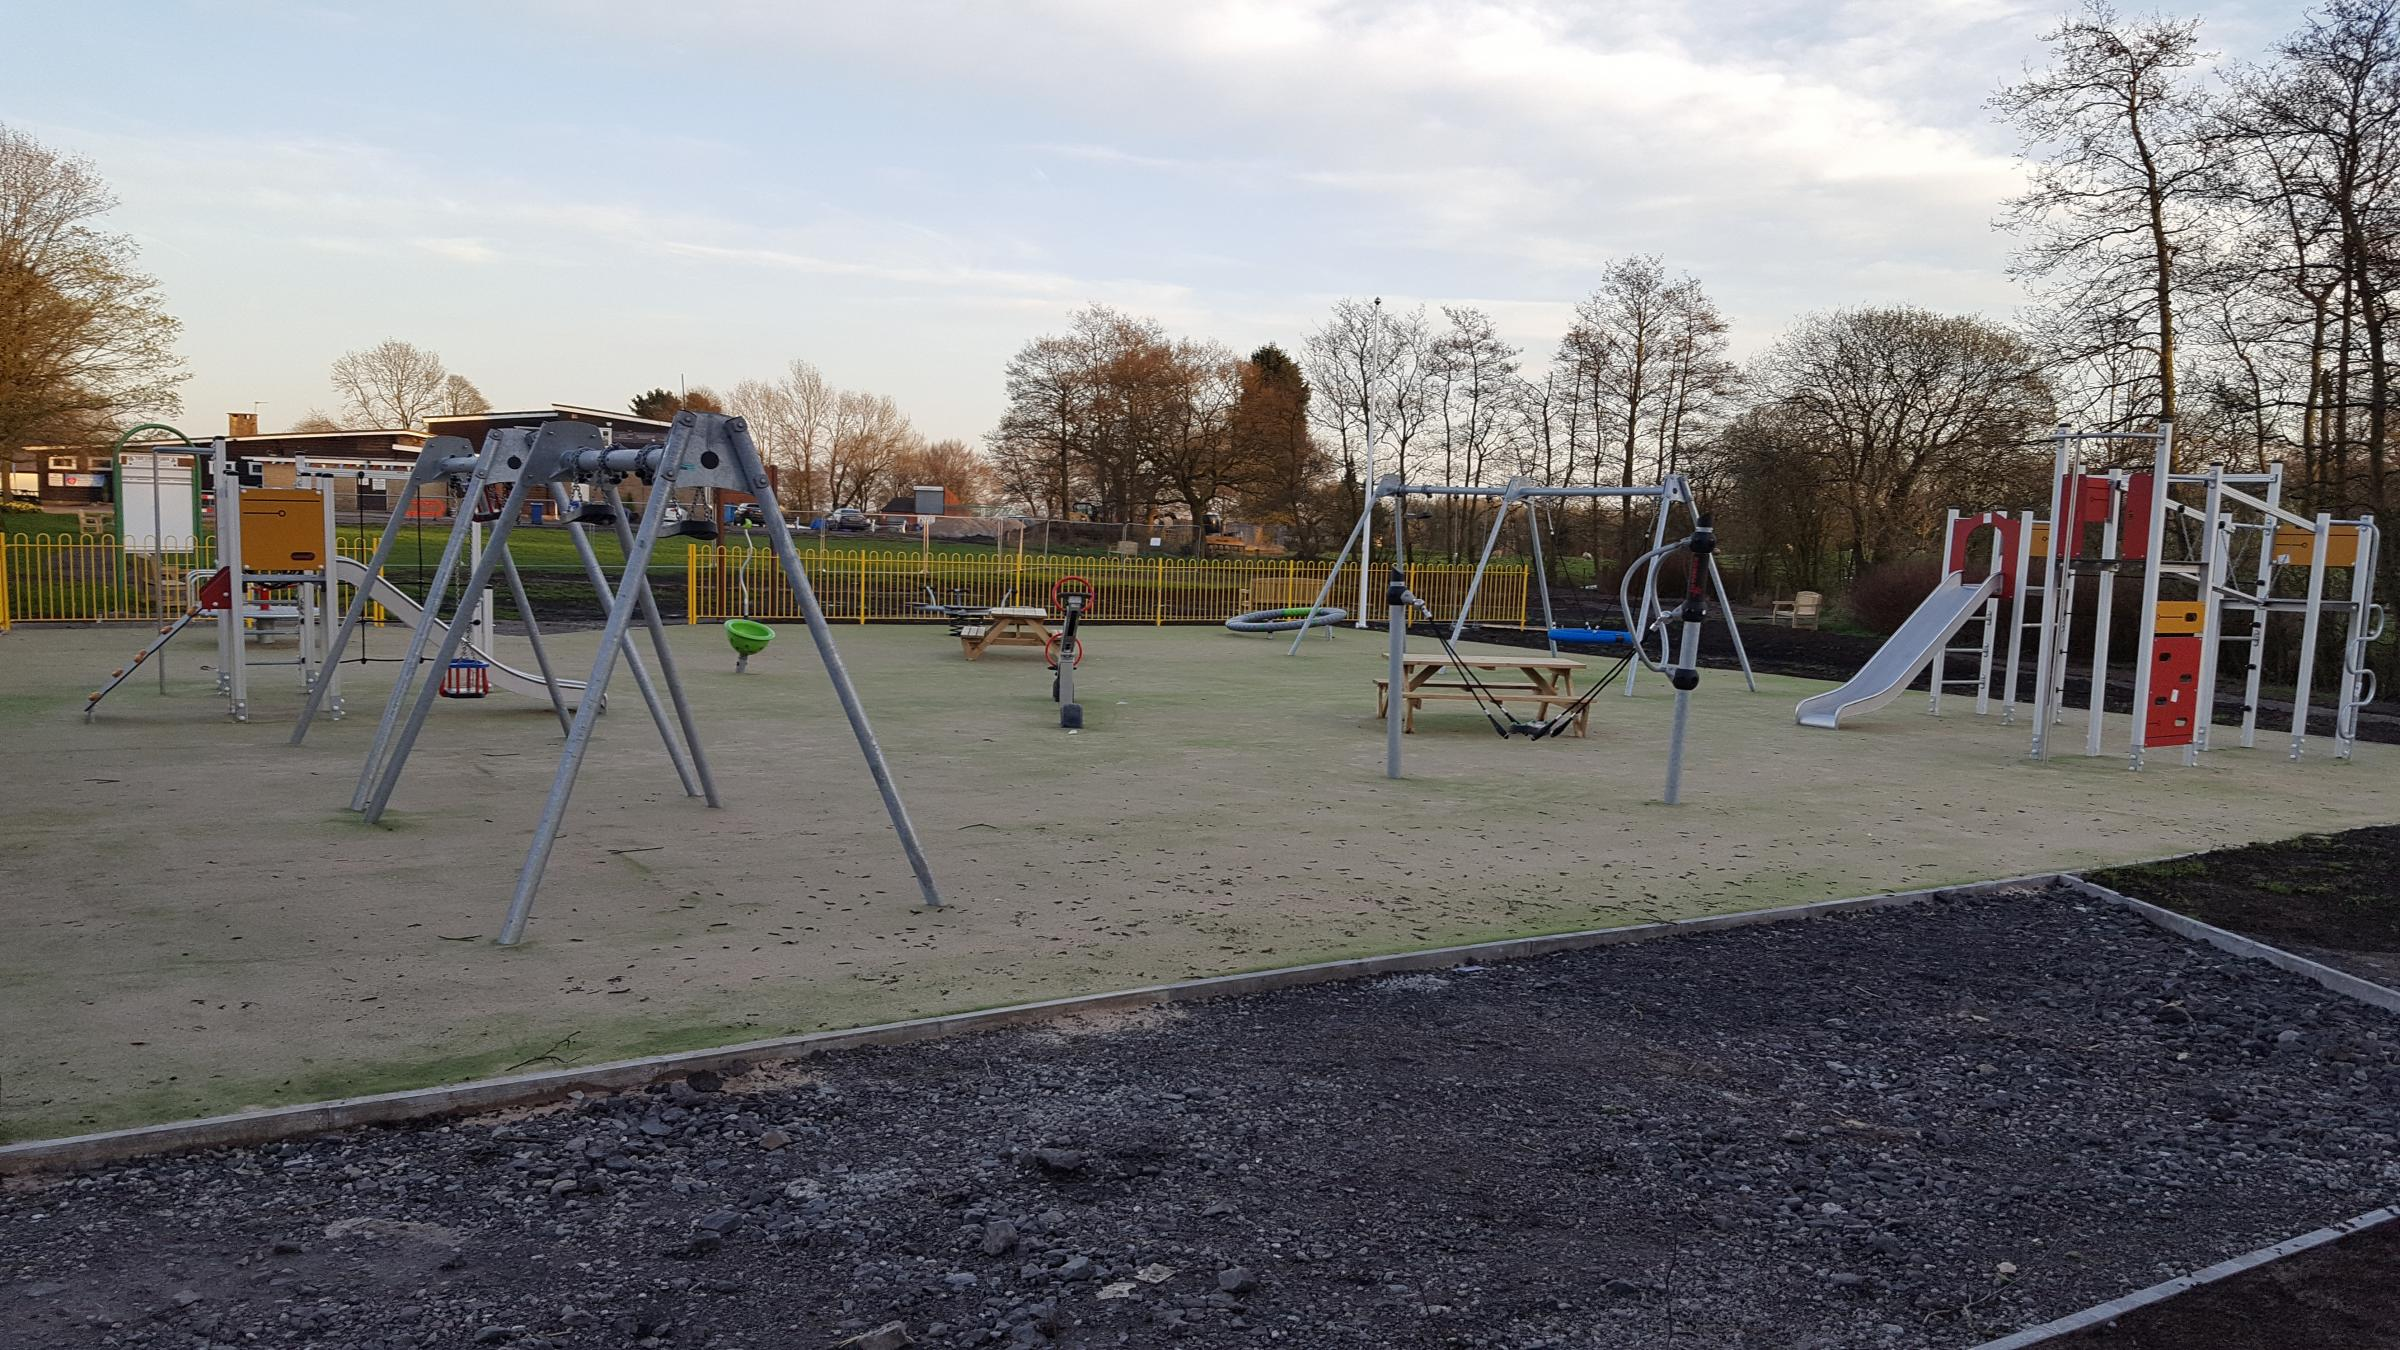 OPENING: The park in Brandlesholme Road, Greenmount, is nearing completion